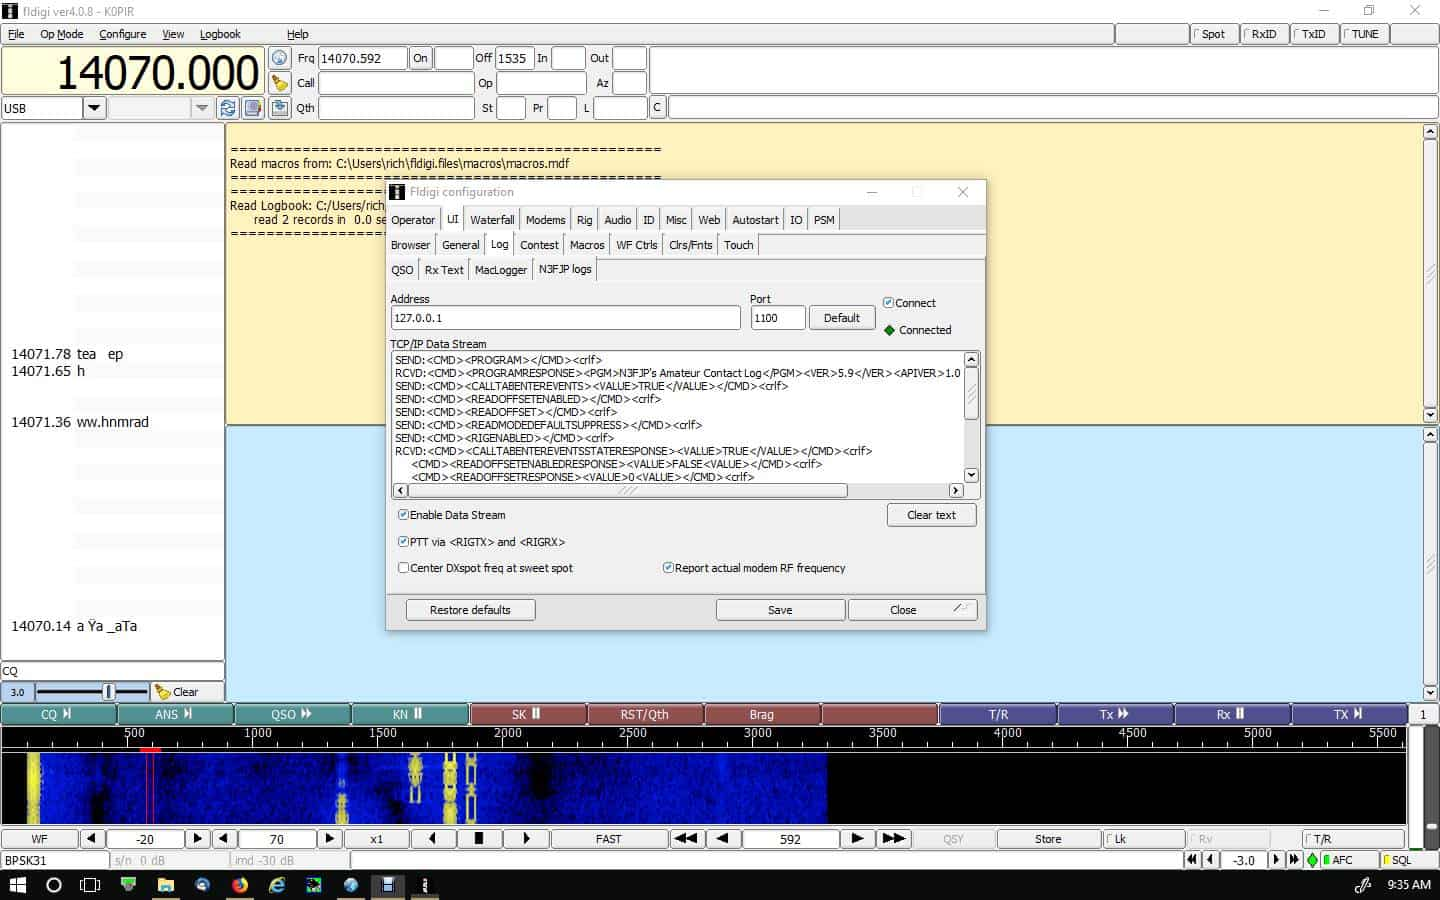 Icom 7610 Rig Control Using N3FJP Amateur Contact Log and Fldigi